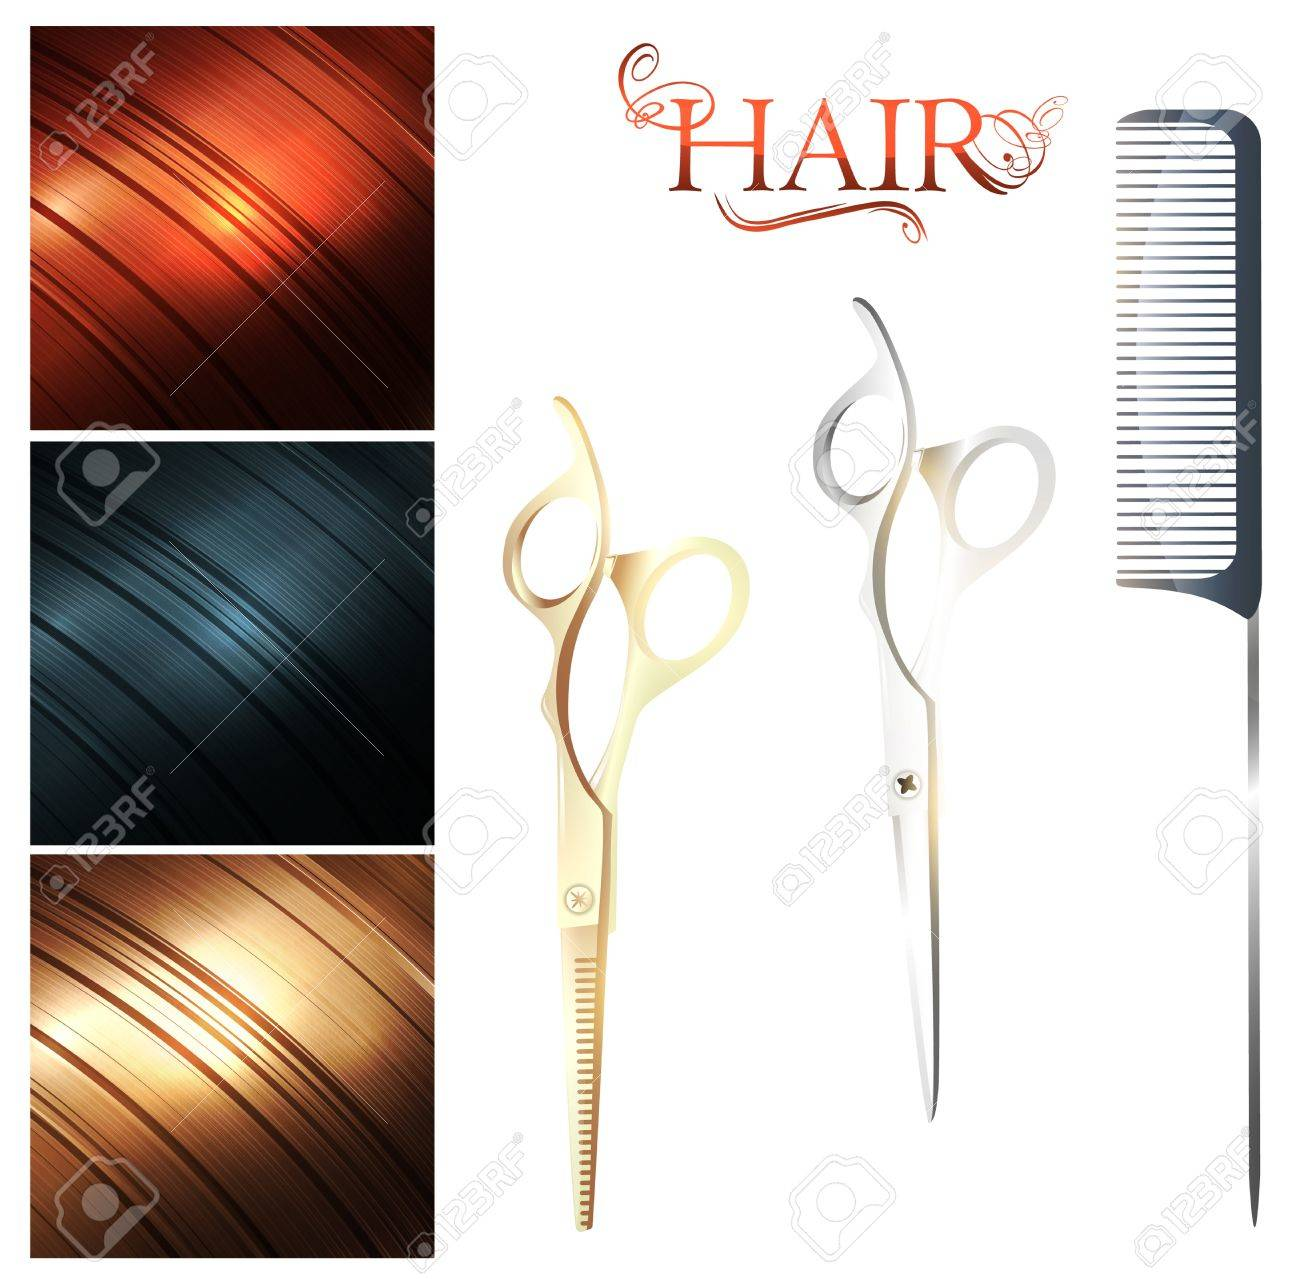 Hair sample palette and cutting scissors with metal pin tail comb - 13111234